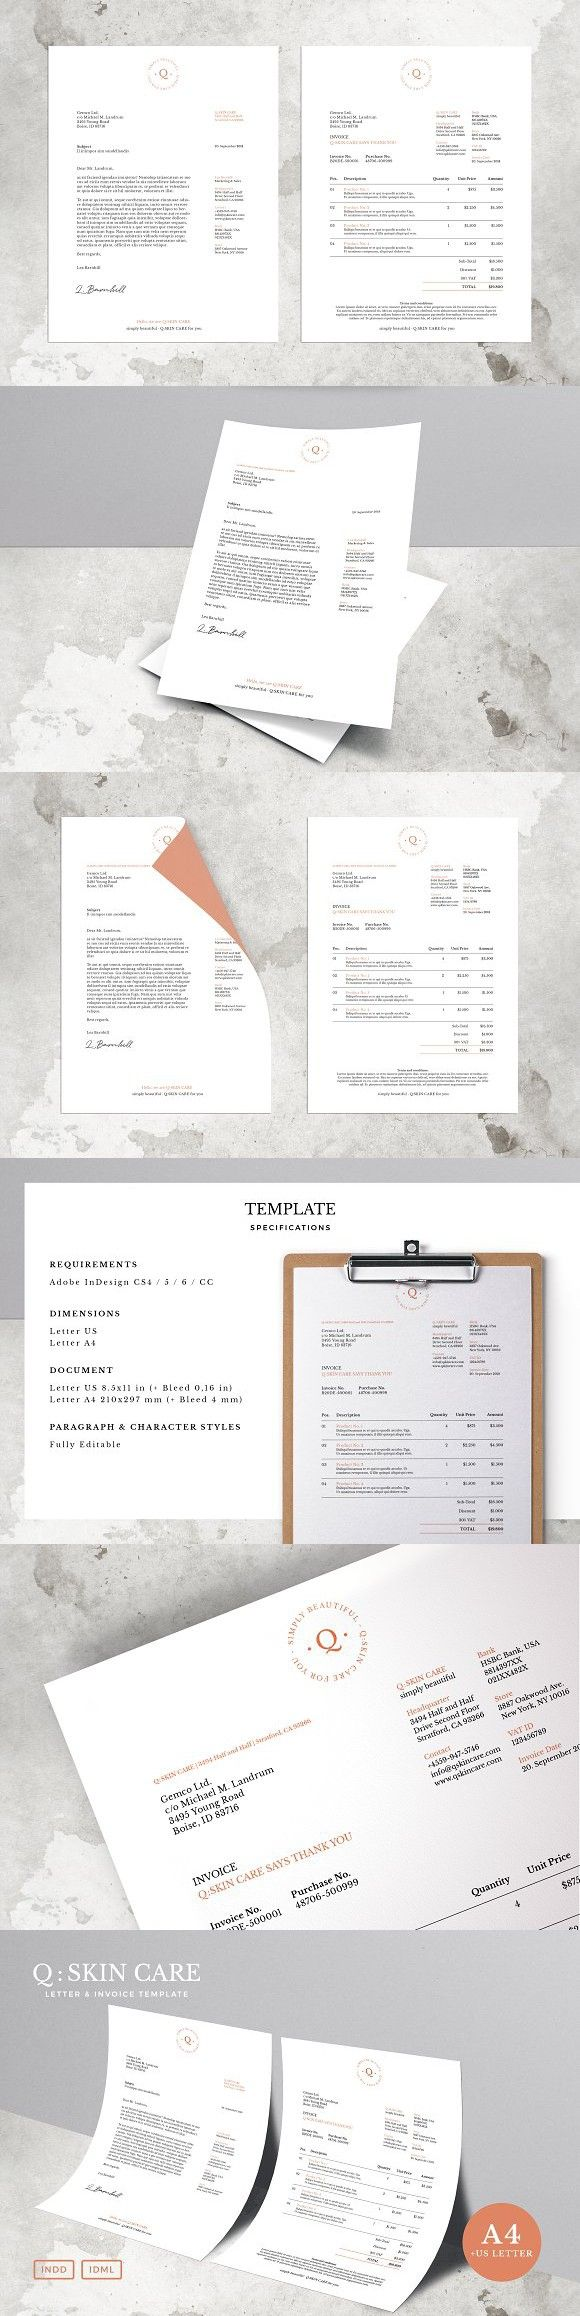 Q: Letter & Invoice Template. Stationery Templates